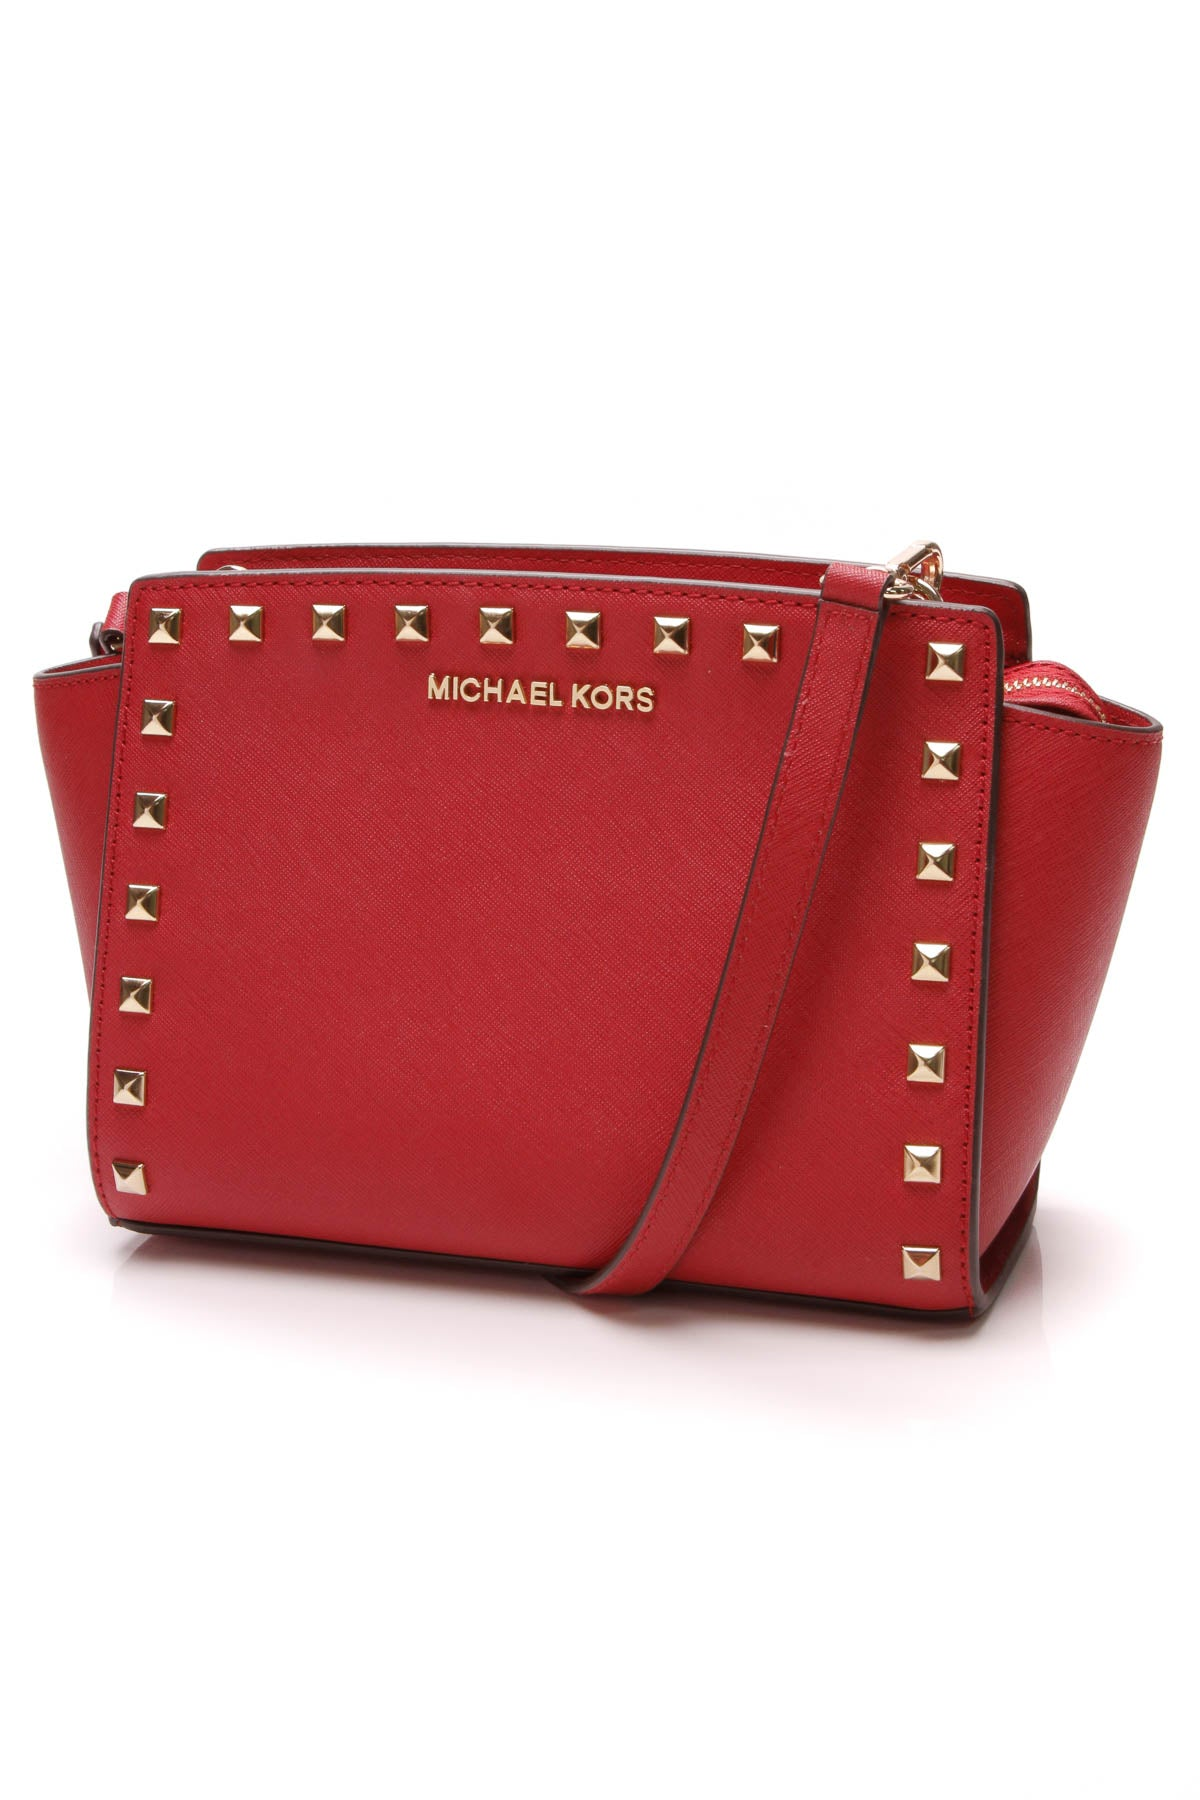 ec0988110bf3 Michael Kors Selma Mini Studded Messenger Bag - Red Saffiano Leather ...